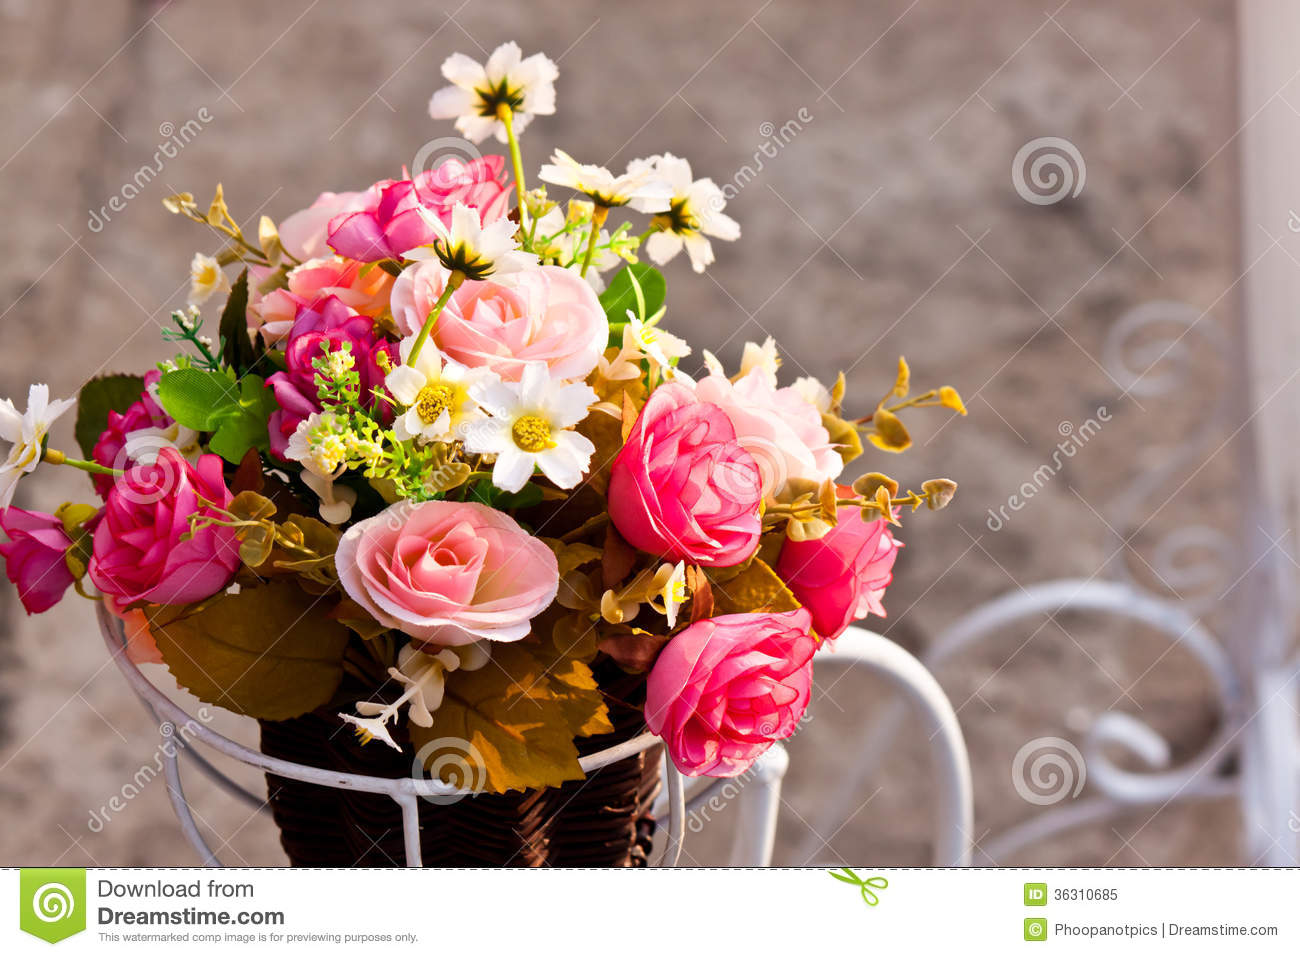 artificial flowers royalty free stock photo image 36310685. Black Bedroom Furniture Sets. Home Design Ideas